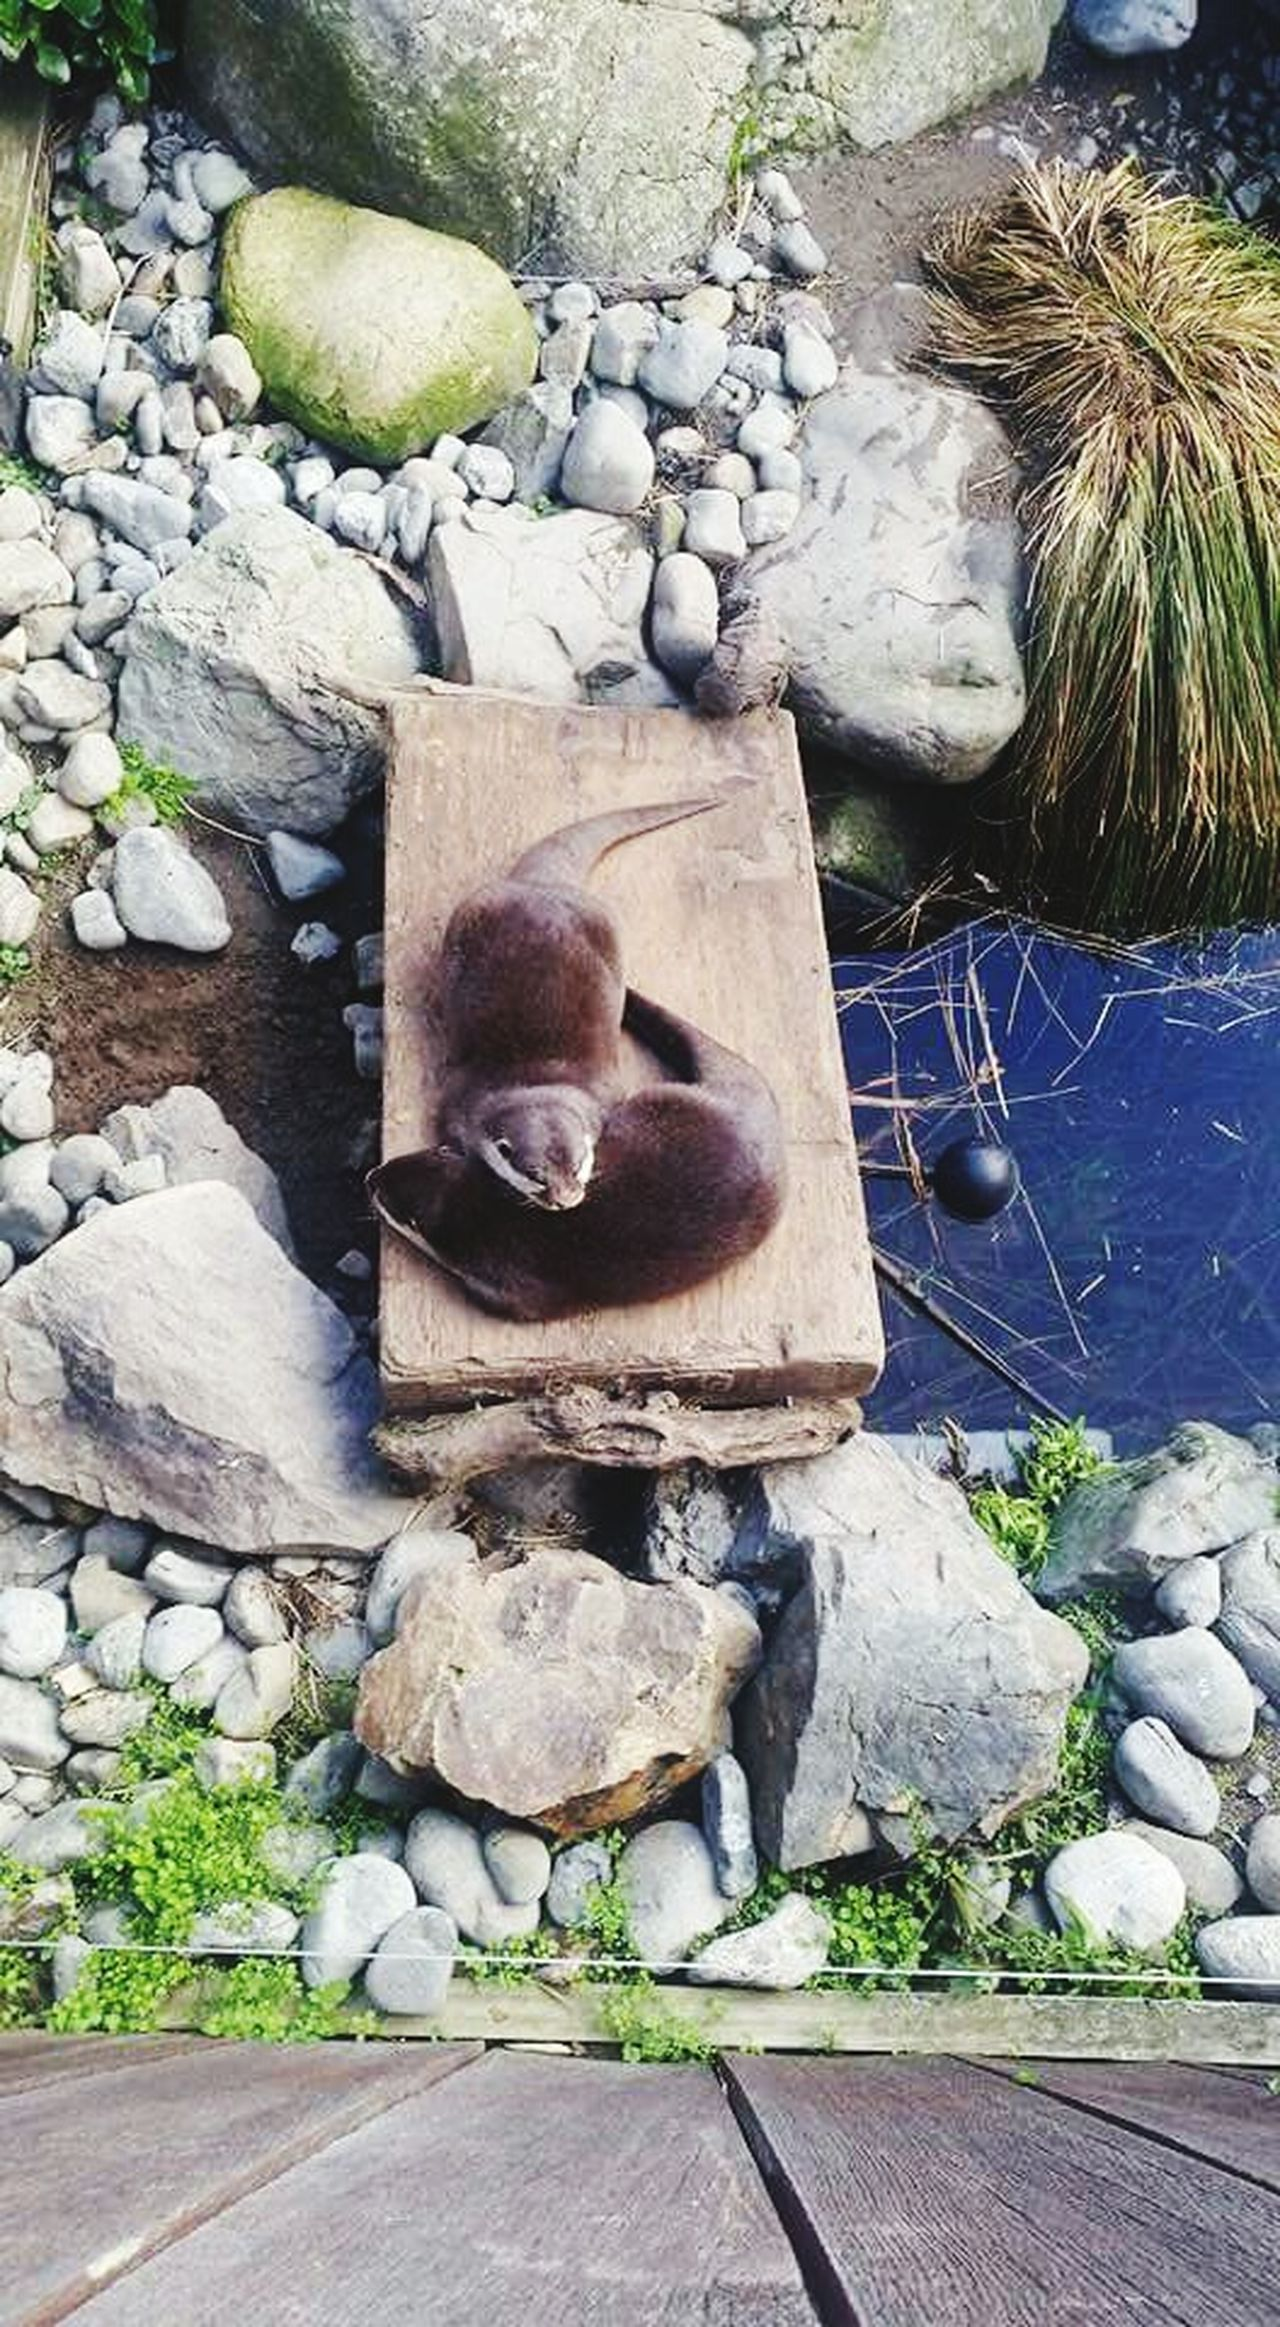 Two otters 😍 Otters Nature Tree Cuddling Beauty In Nature Outdoors Zoo Zoo Animals  Close-up Mobile Photography Cuteness